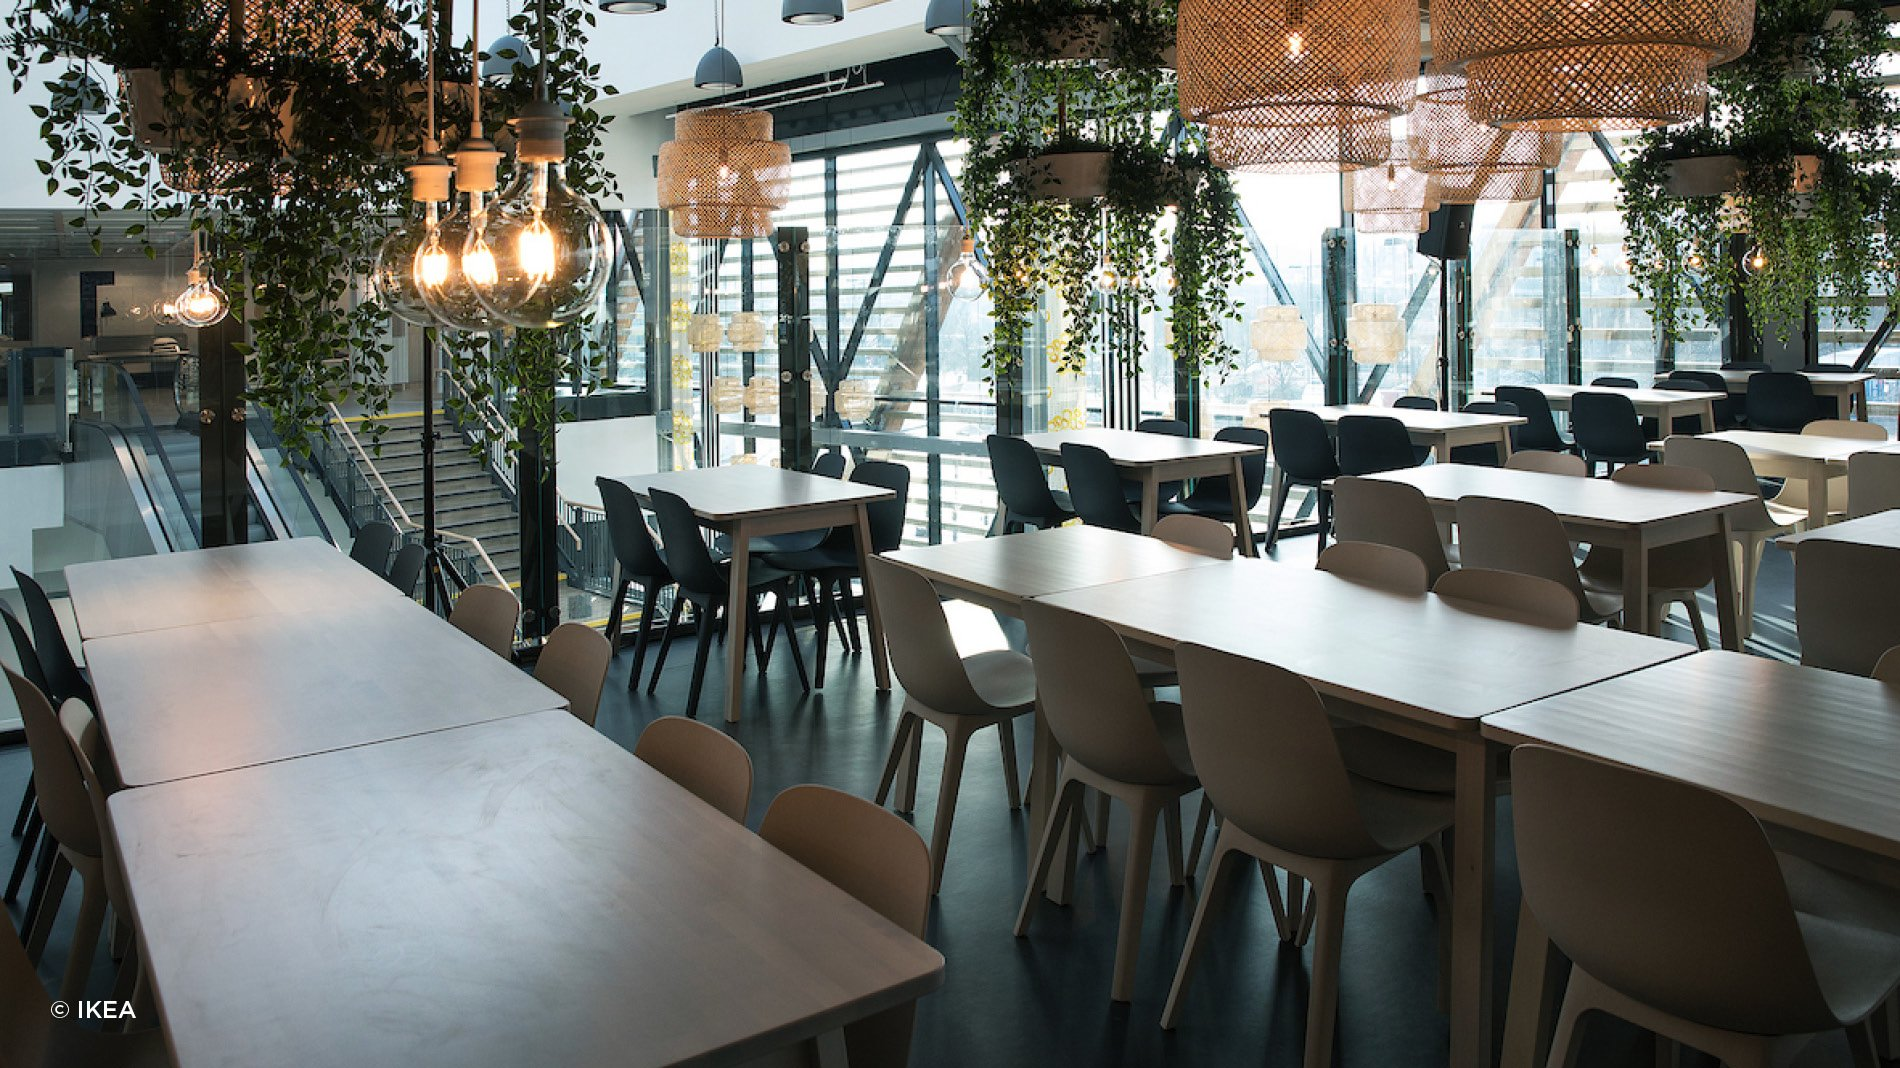 Wooden furniture, plants and lighting at IKEA's most sustainable store in the UK in Greenwich